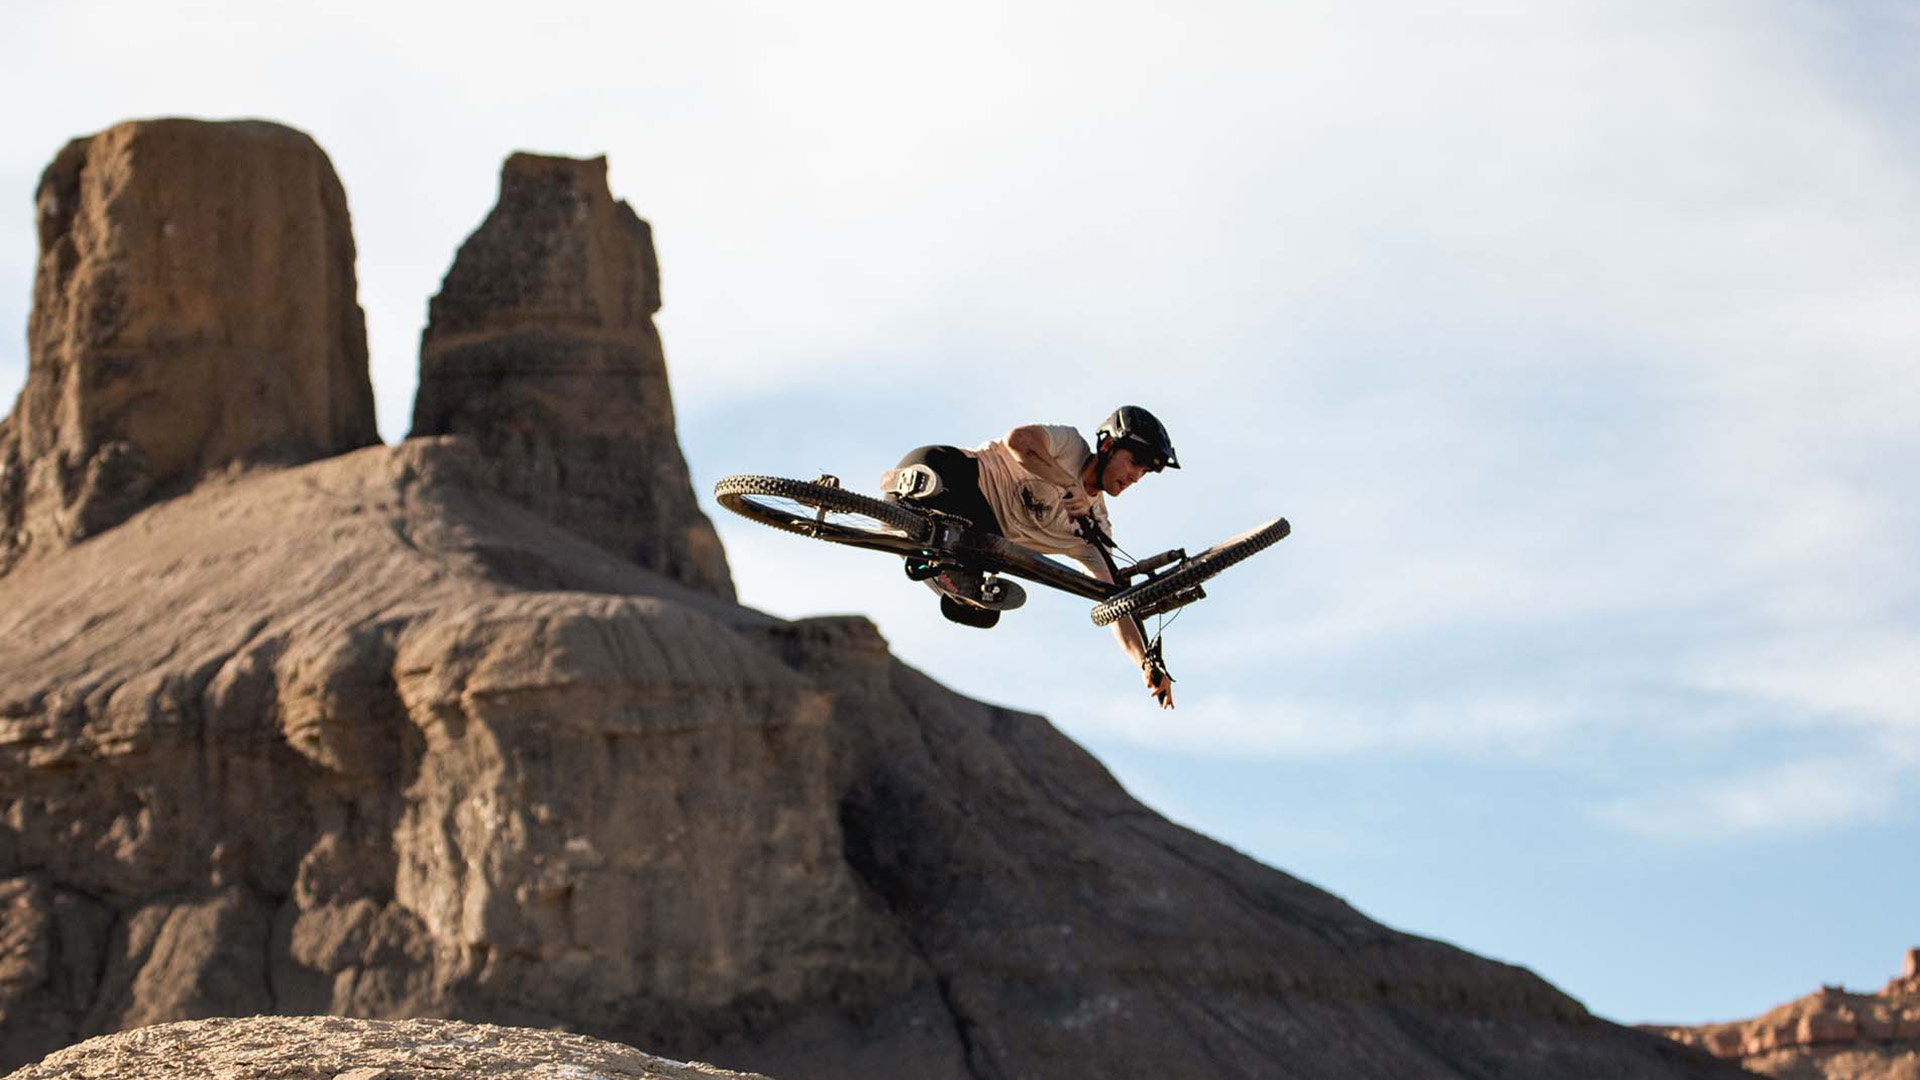 The New Yeti SB140 Is a Trail Machine That's Built to Rip